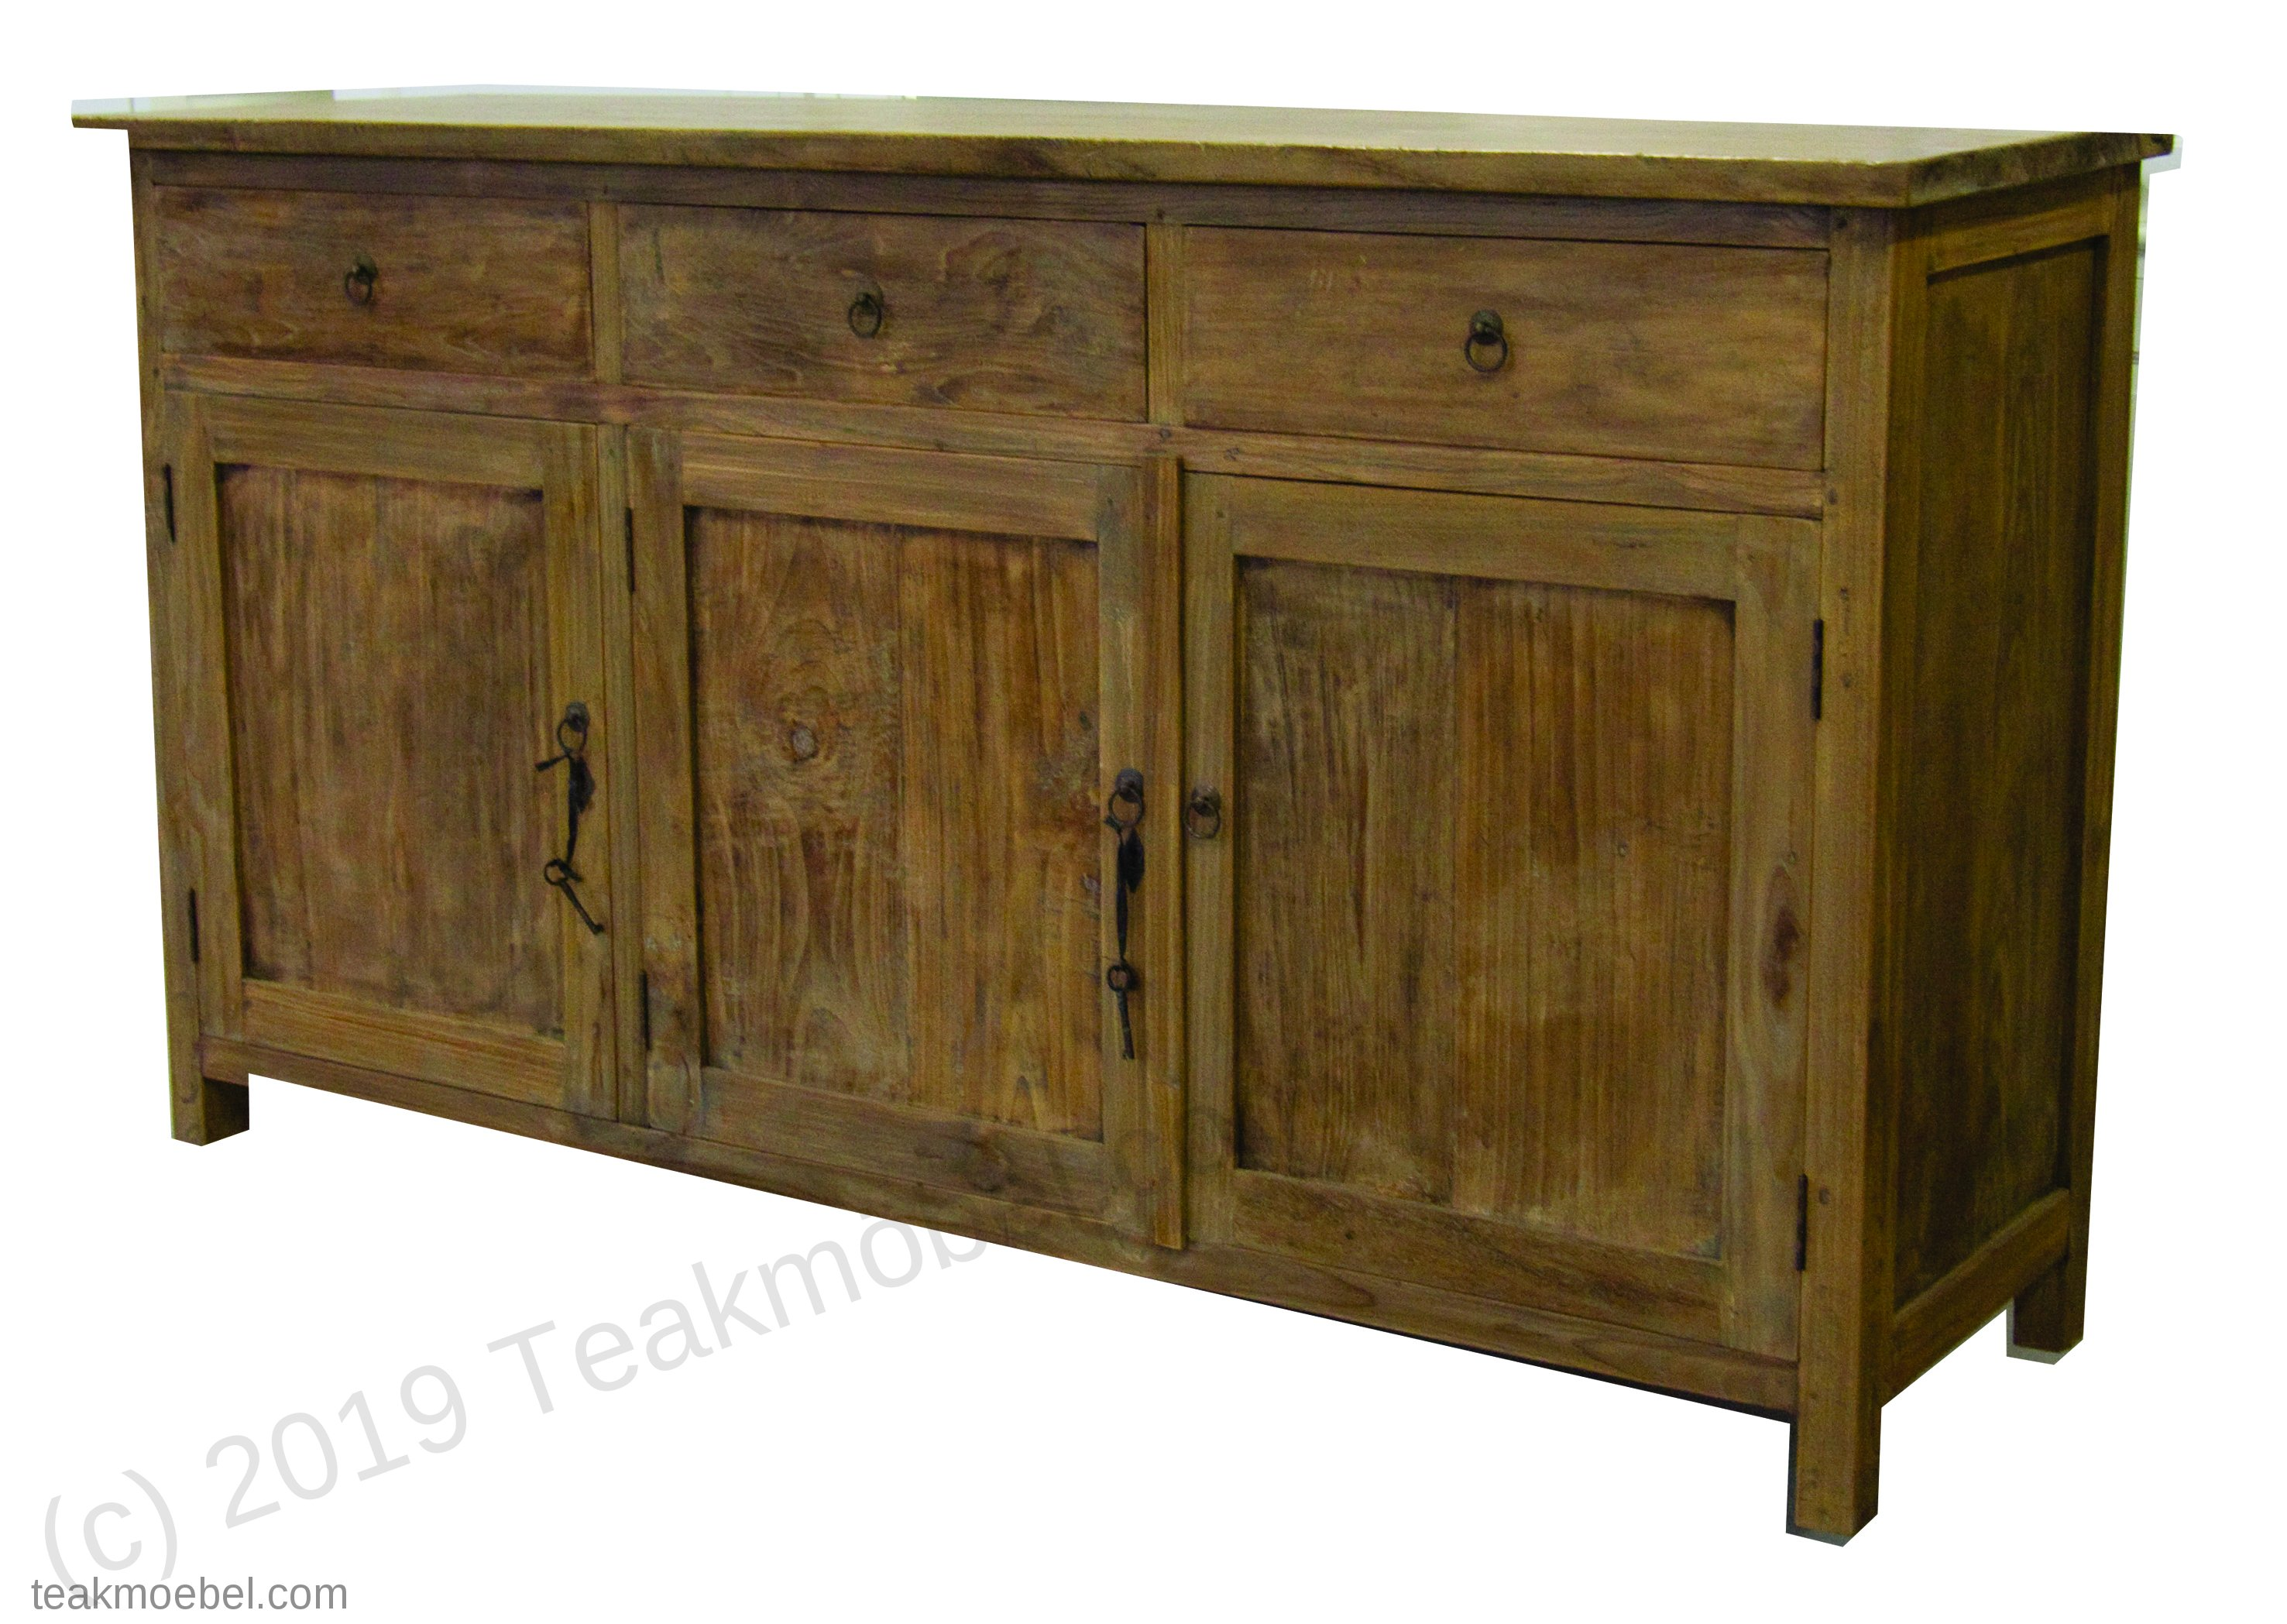 teak anrichte altes holz 160 x 50 x 90 cm teakm. Black Bedroom Furniture Sets. Home Design Ideas